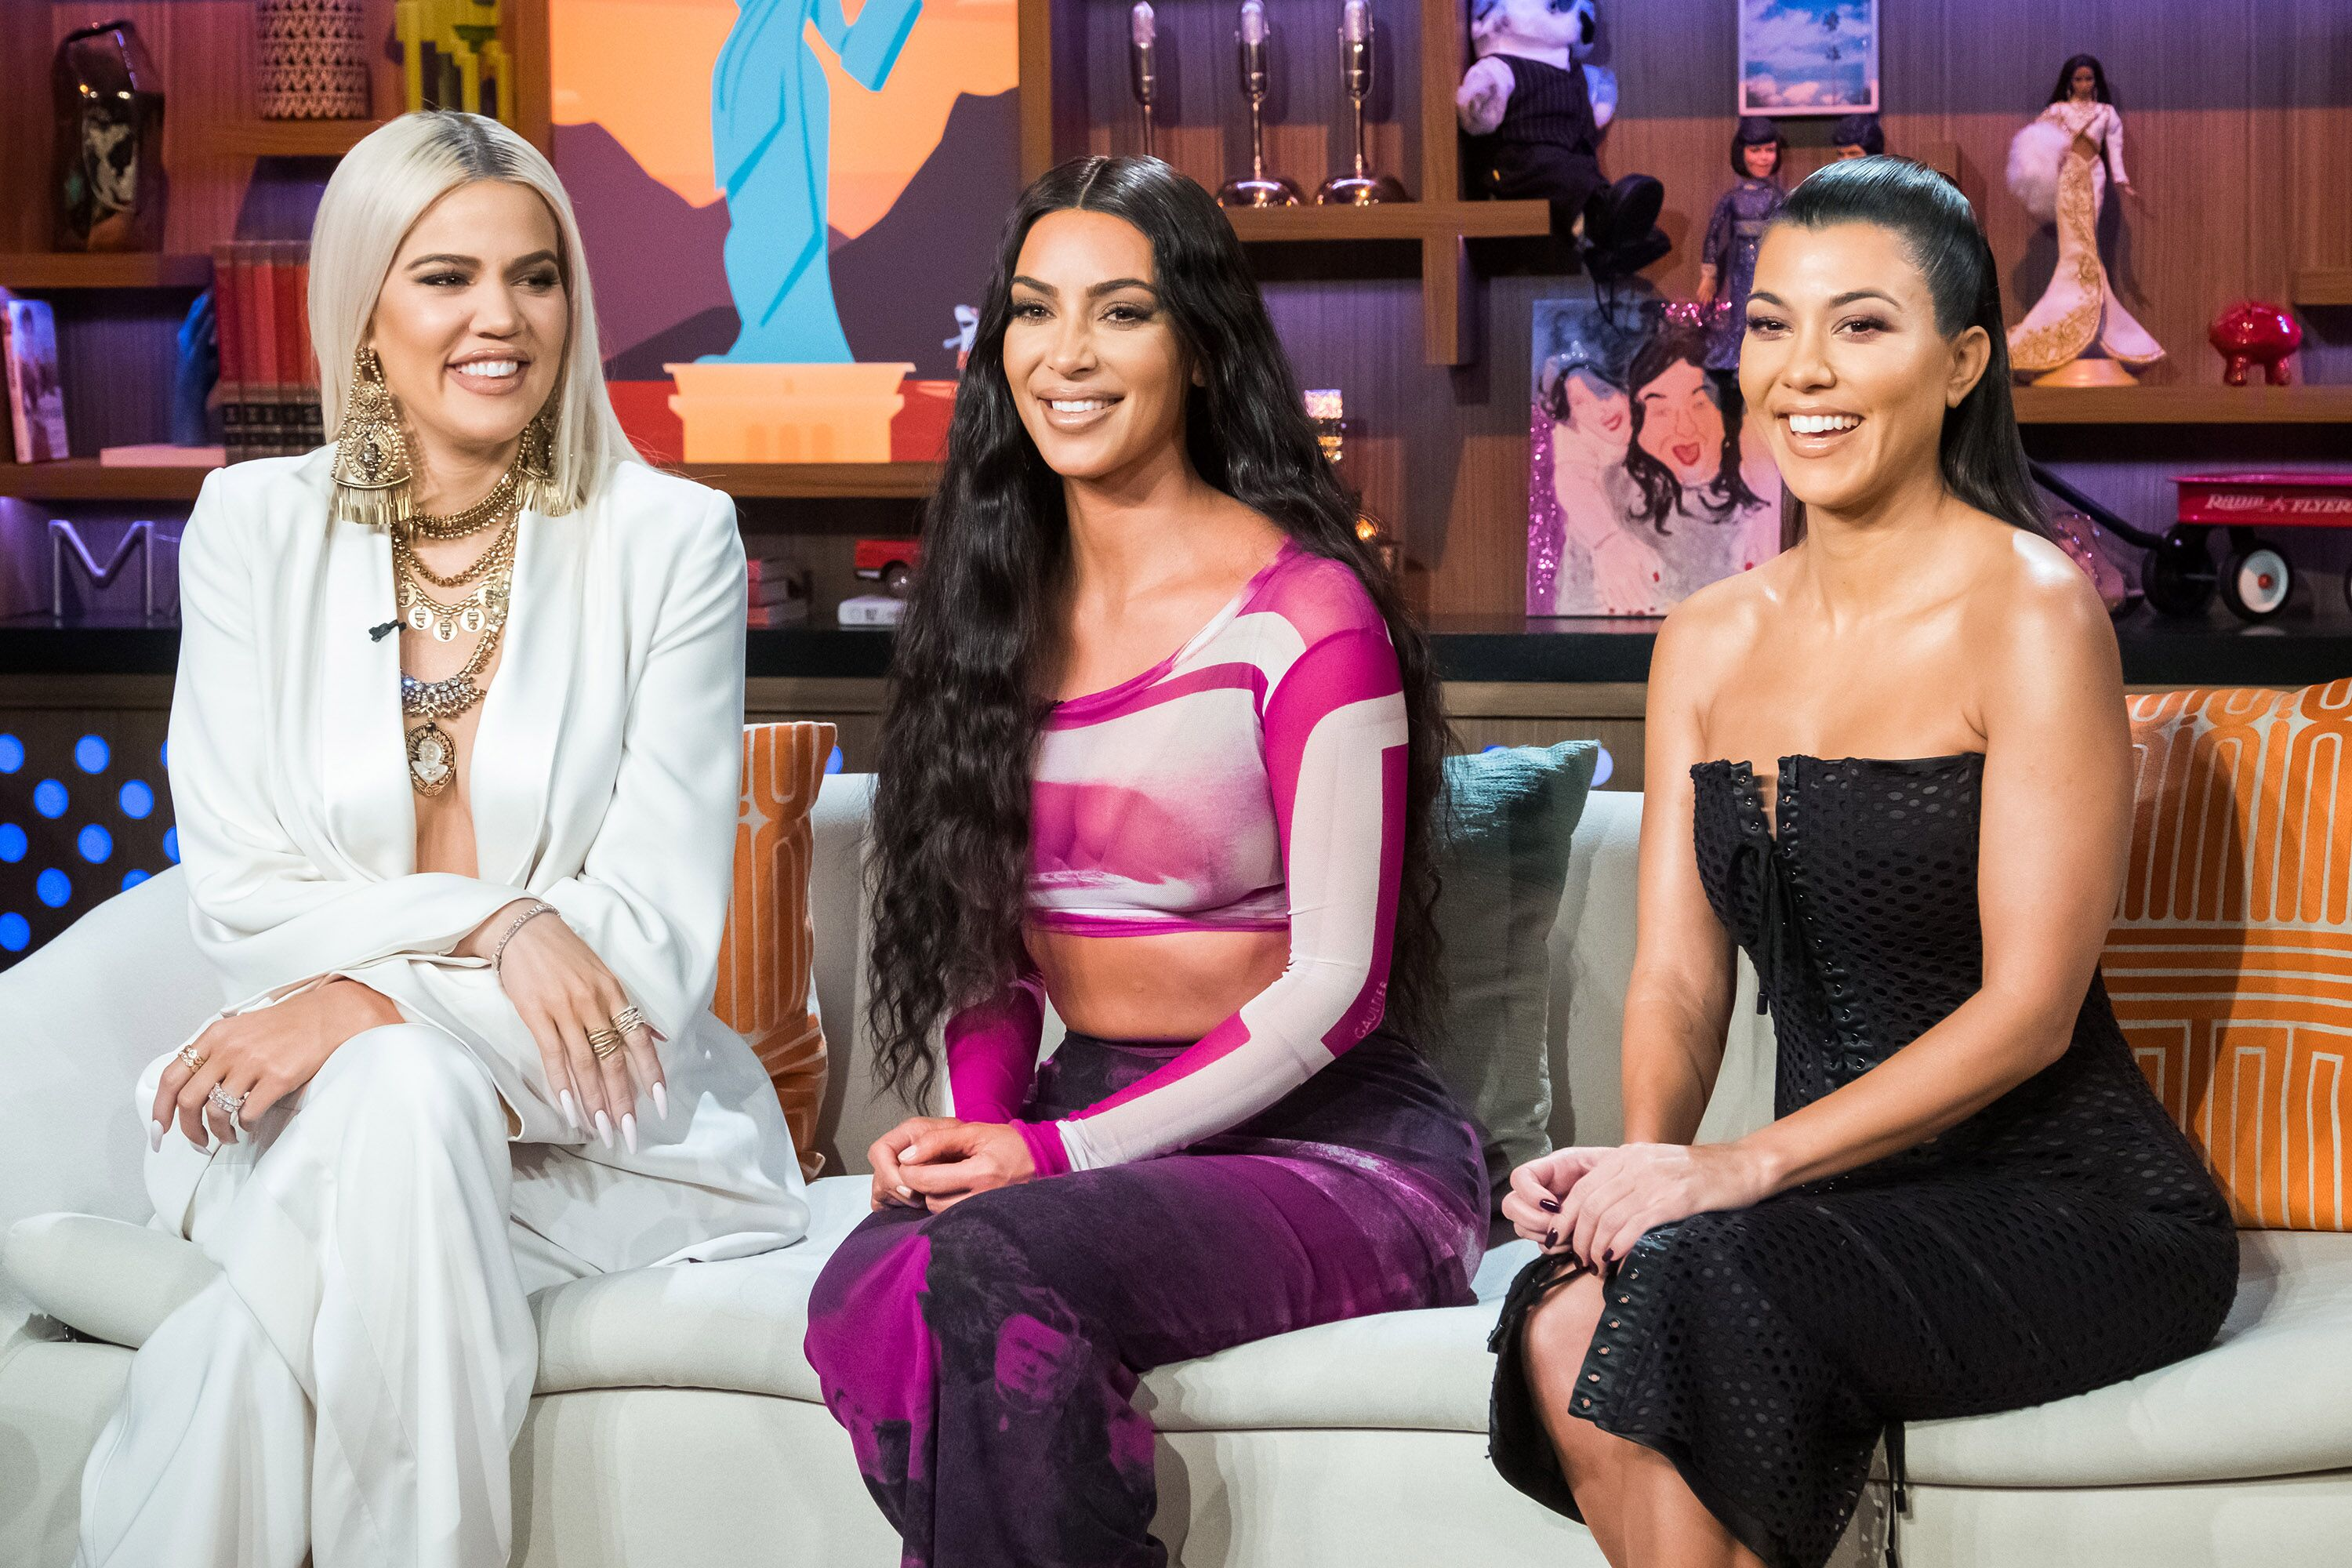 """Khloe, Kim, and Kourtney Kardashian on """"Watch What Happens Live With Andy Cohen"""" on January 14, 2019 